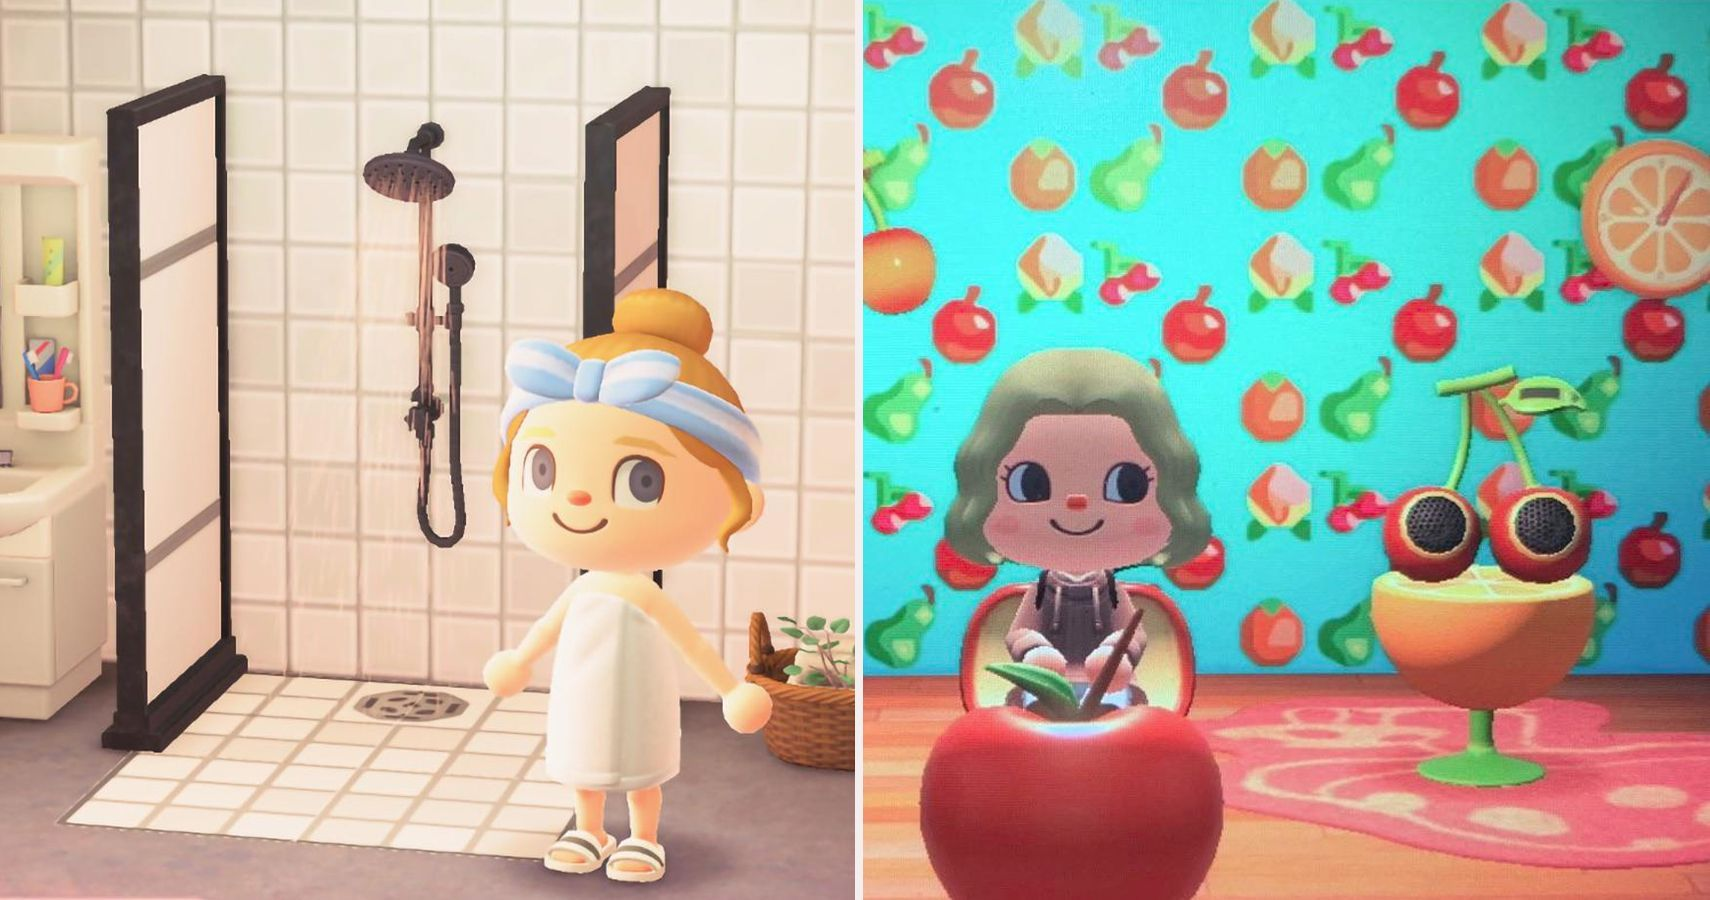 animal crossing new horizons wallpaper designs codes